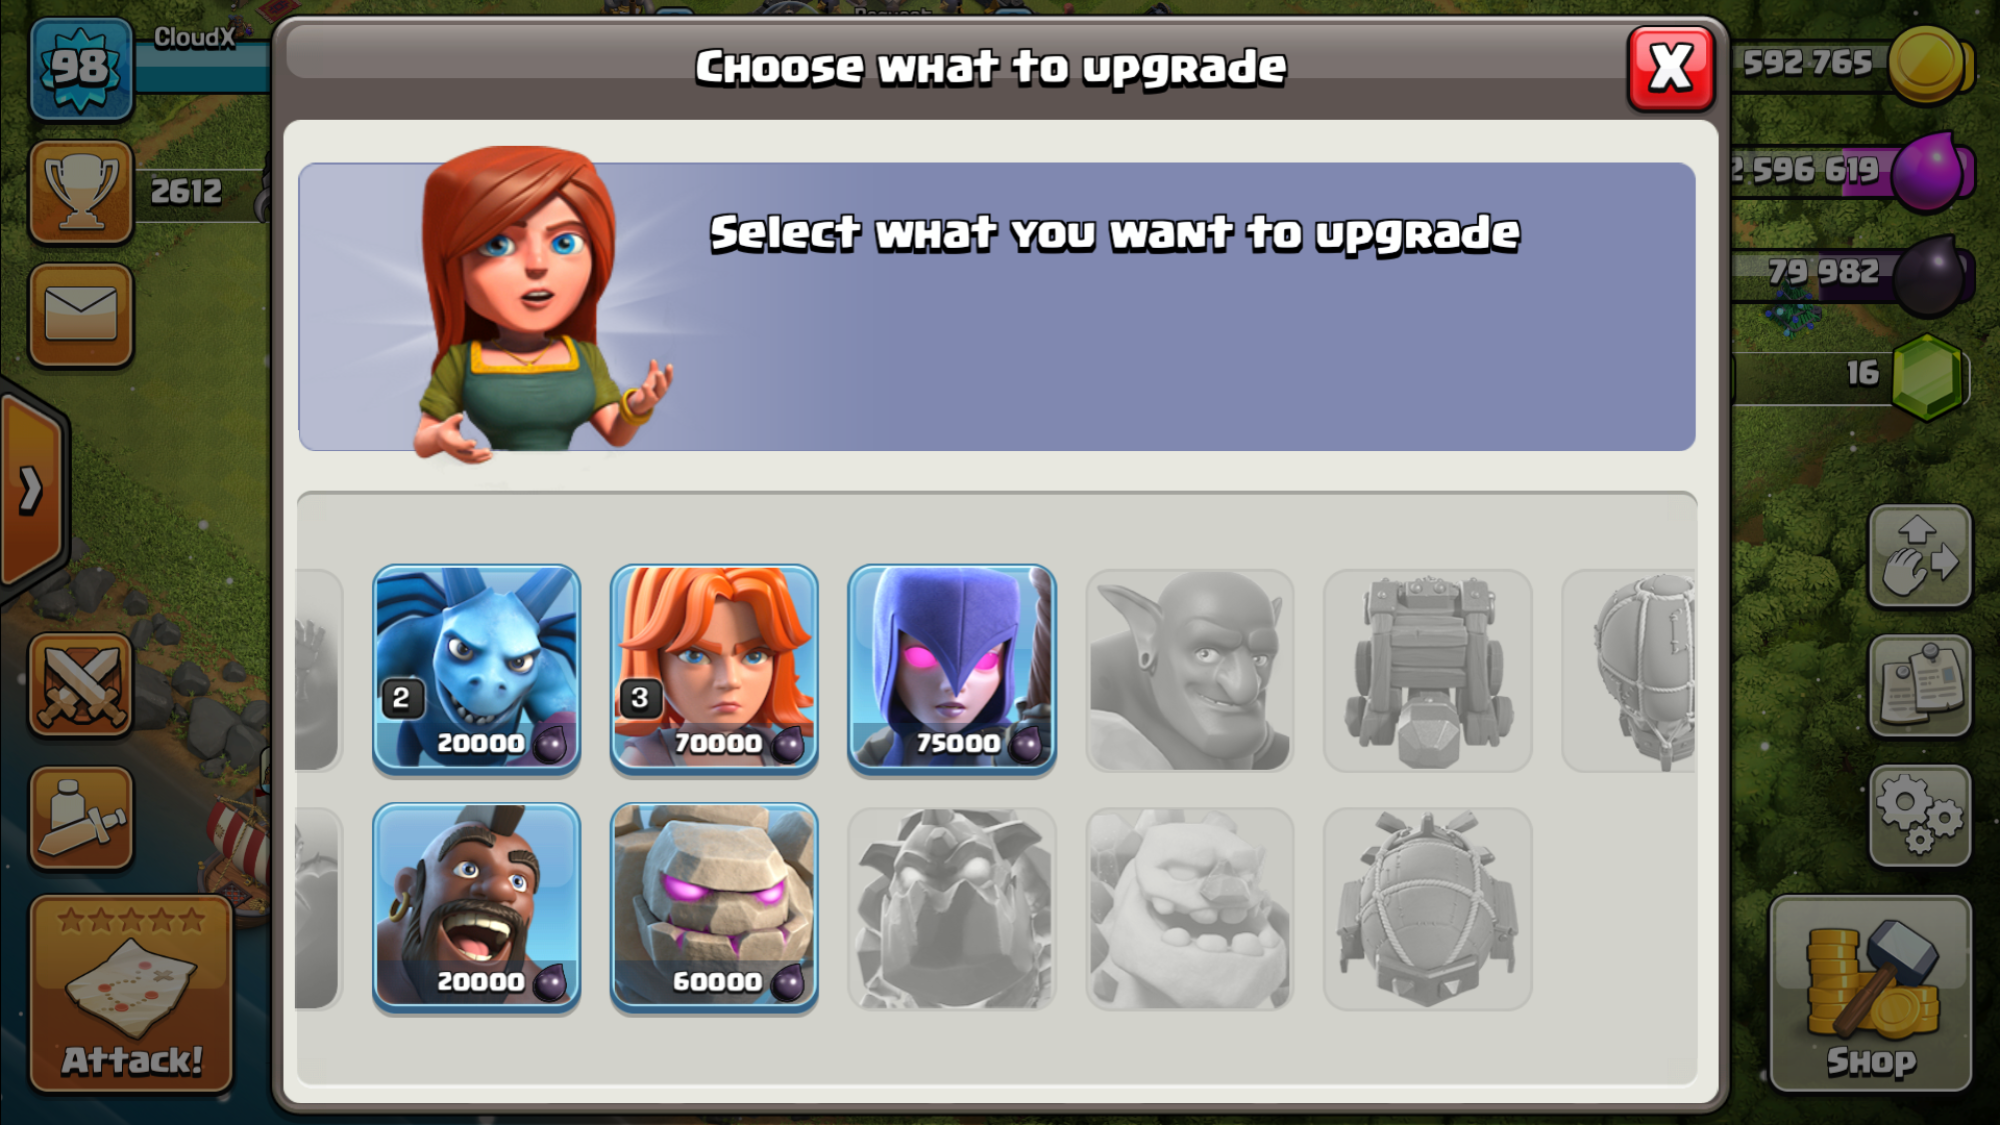 Which should I upgrade first?